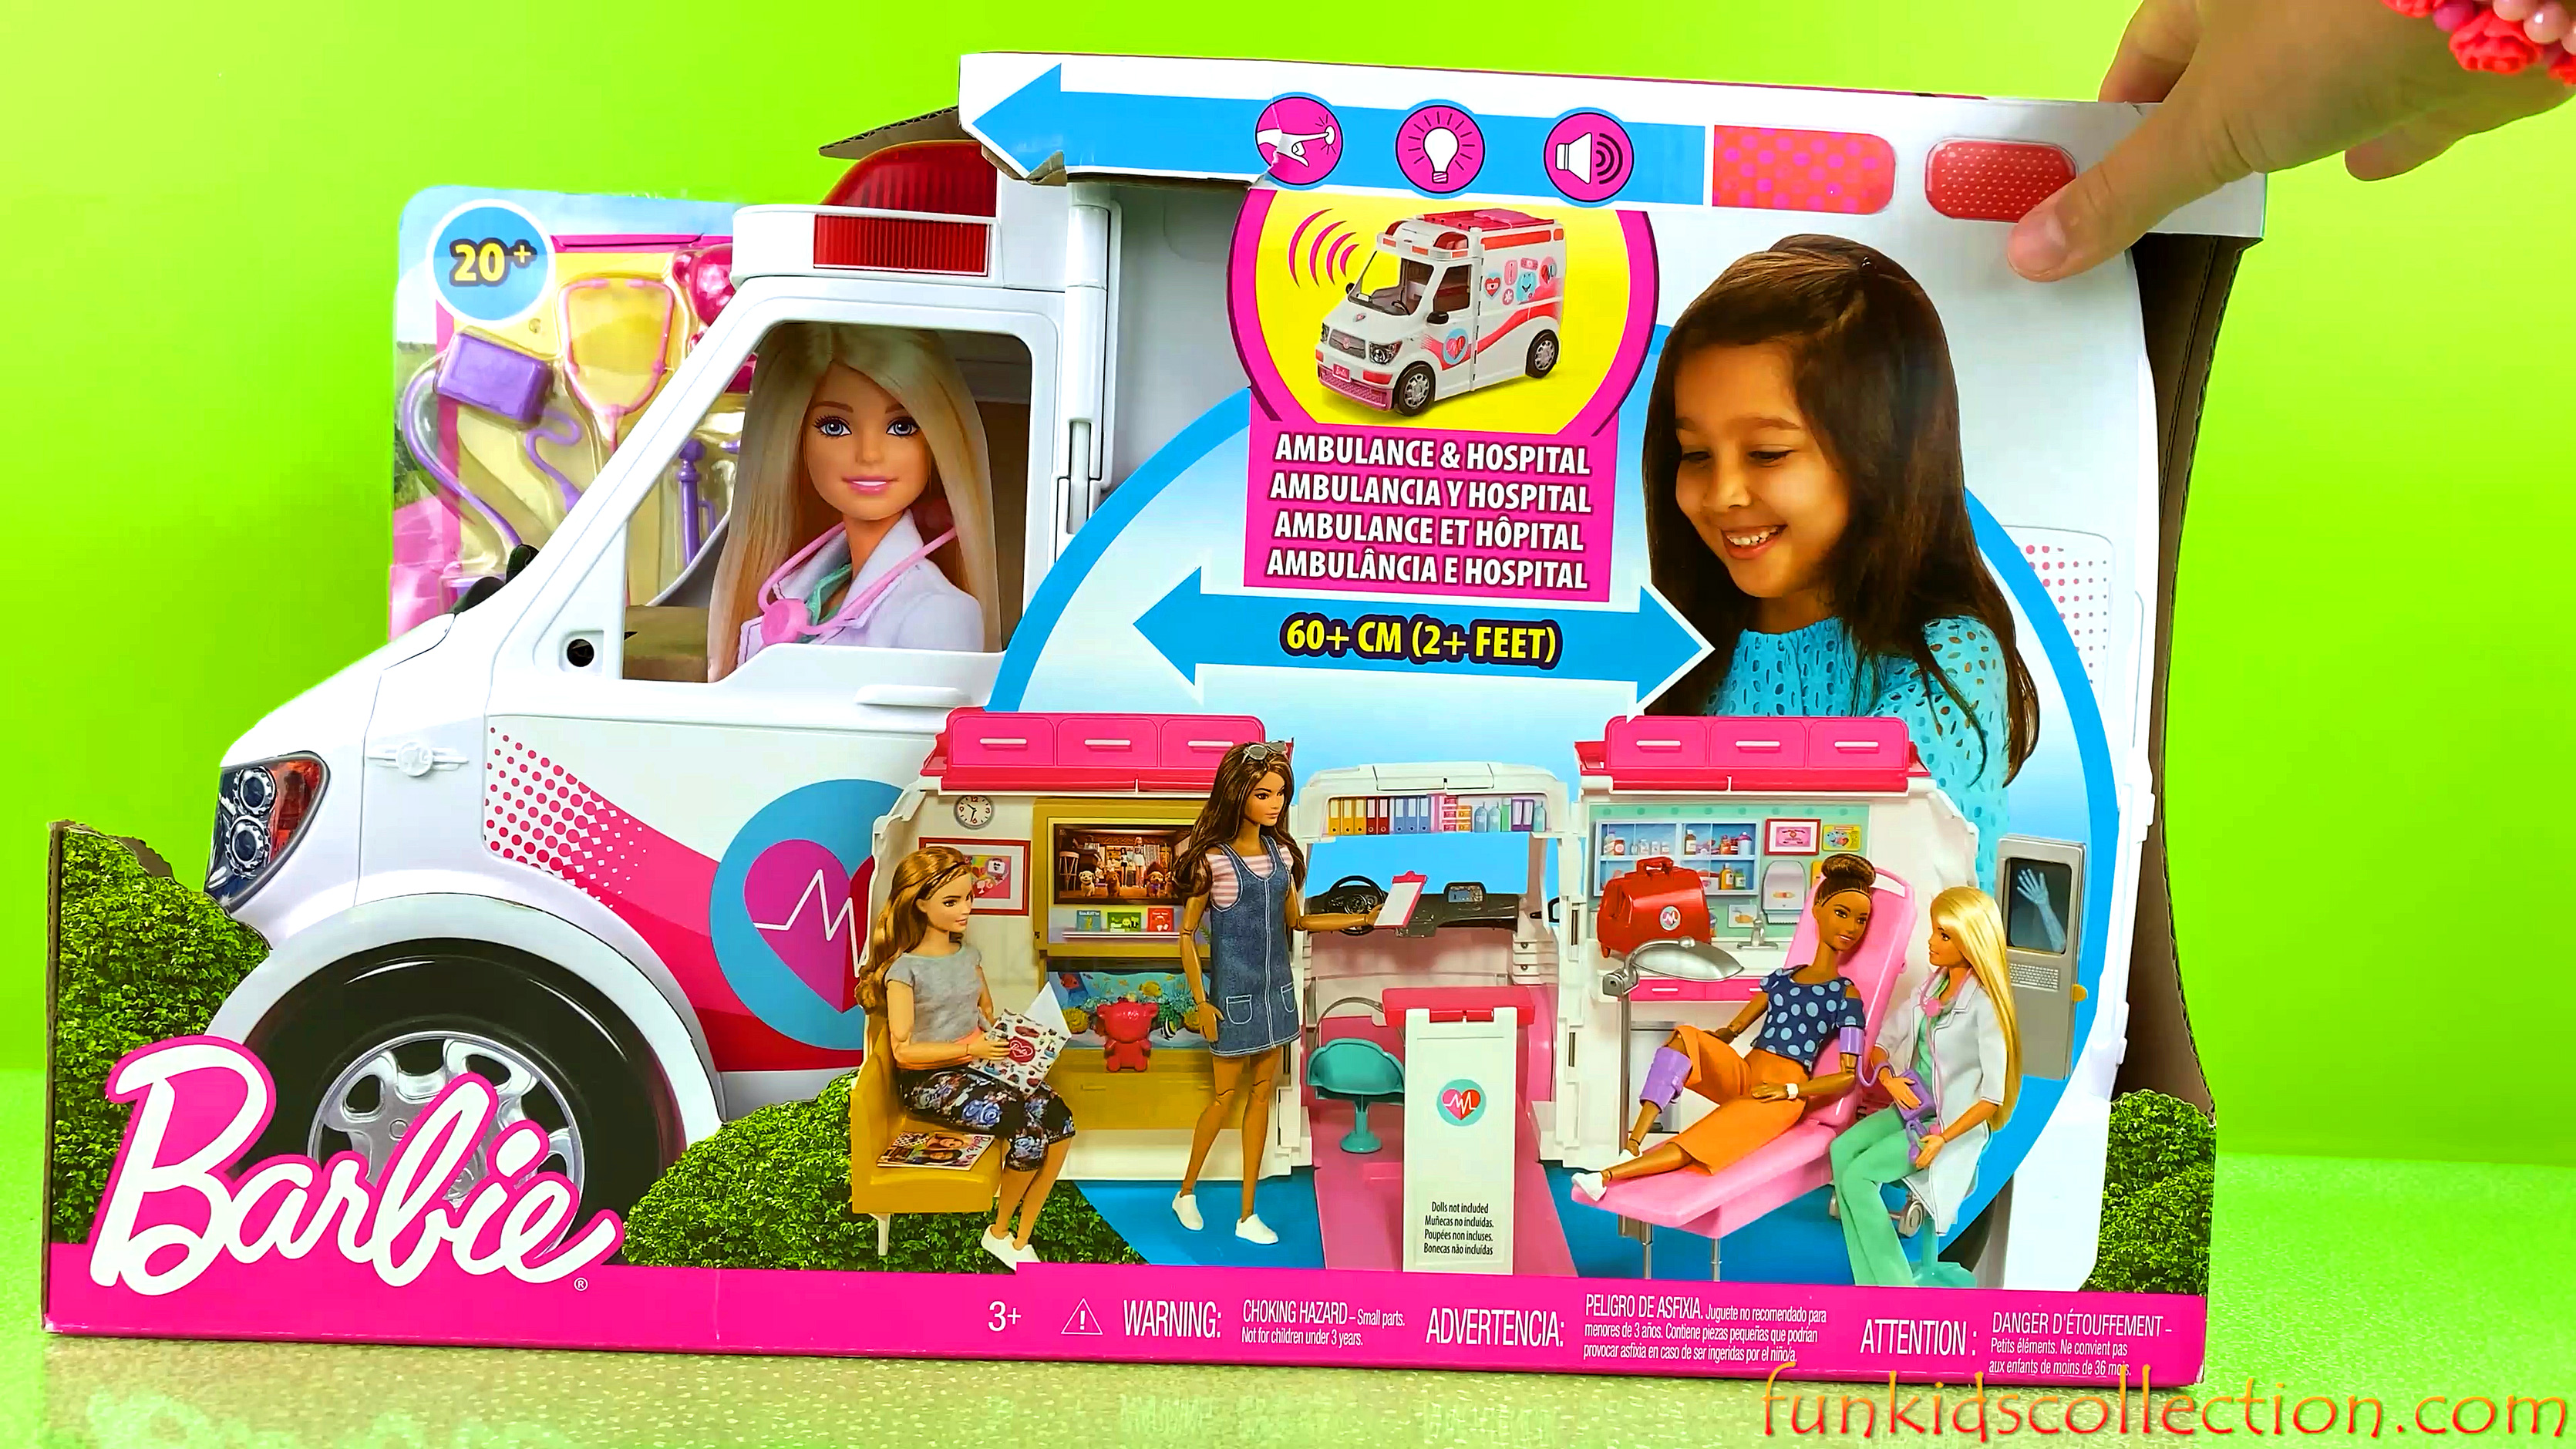 Barbie Ambulance & Hospital Playset Magical Transforms | Barbie Ambulance Mobile Care Clinic Car